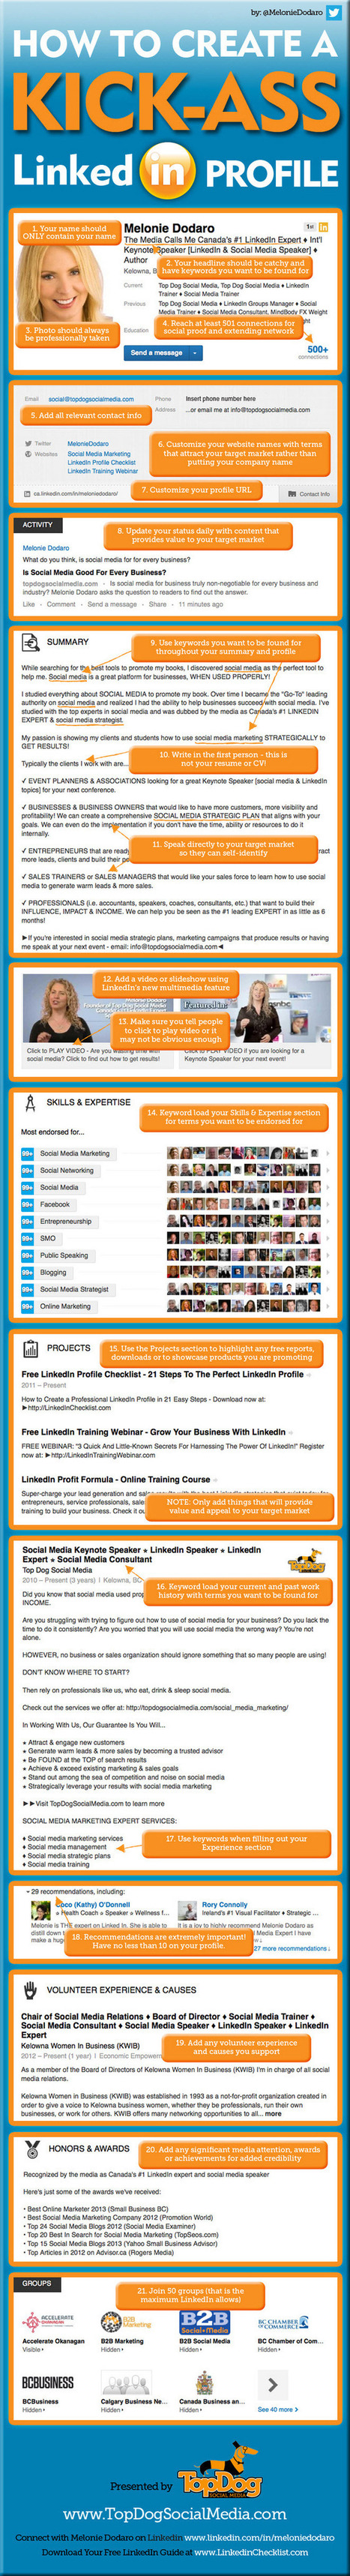 21 Steps to Create an Awesome LinkedIn Profile - Jeffbullas's Blog | creating infographics for promotion | Scoop.it